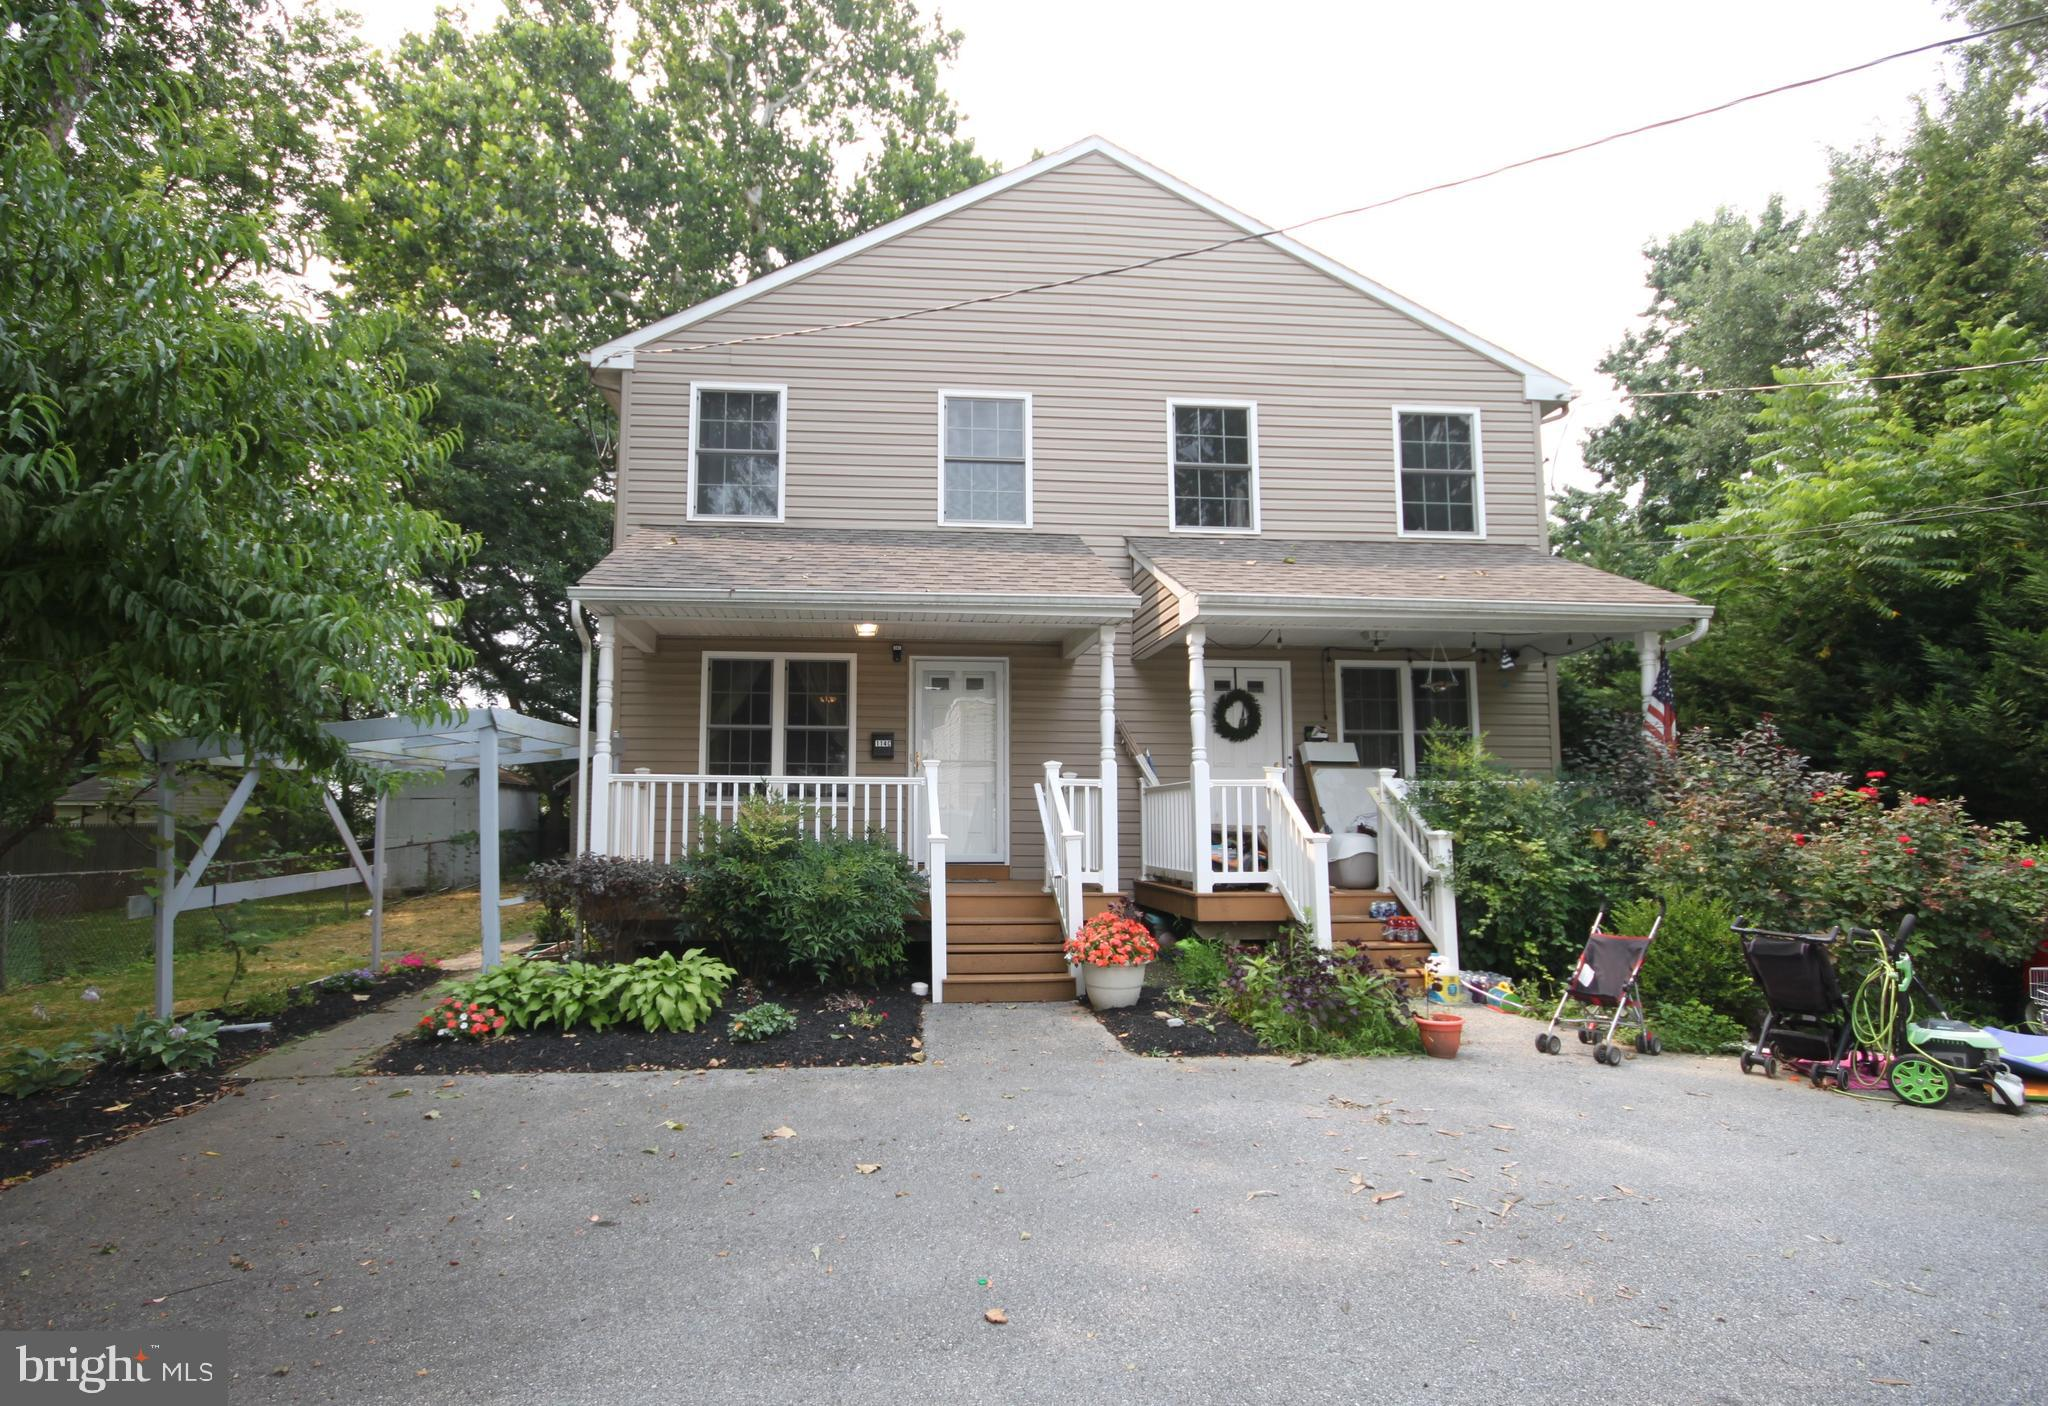 Please see Virtual Tour. Sunny and bright 7 year-old twin house in Great Radnor school district. A fantastic property size with great front porch and back deck, huge fenced yard and plenty of off-street parking. Nice private front yard with plenty of yard for gardening. Walk up to the covered front porch. Large living space with nice kitchen and dining area. Hardwood floor throughout the entire of the house. The beautiful kitchen with cherry cabinet and granite counter top. Laundry is around the breakfast area. There are 3 bedrooms and 2 bathrooms upstairs. Master bedroom with the full bathroom. Other two good size bedrooms share a large hall way bathroom which has a practical double sink. Downstairs is a large unfinished basement. It offers a great storage space. This home truly offers the best of everything because of it is amazing Bryn Mawr location. This house is very close to public transportation, near high way entry, and walk to university. Radnor school district, convenient to everything. Welcome!